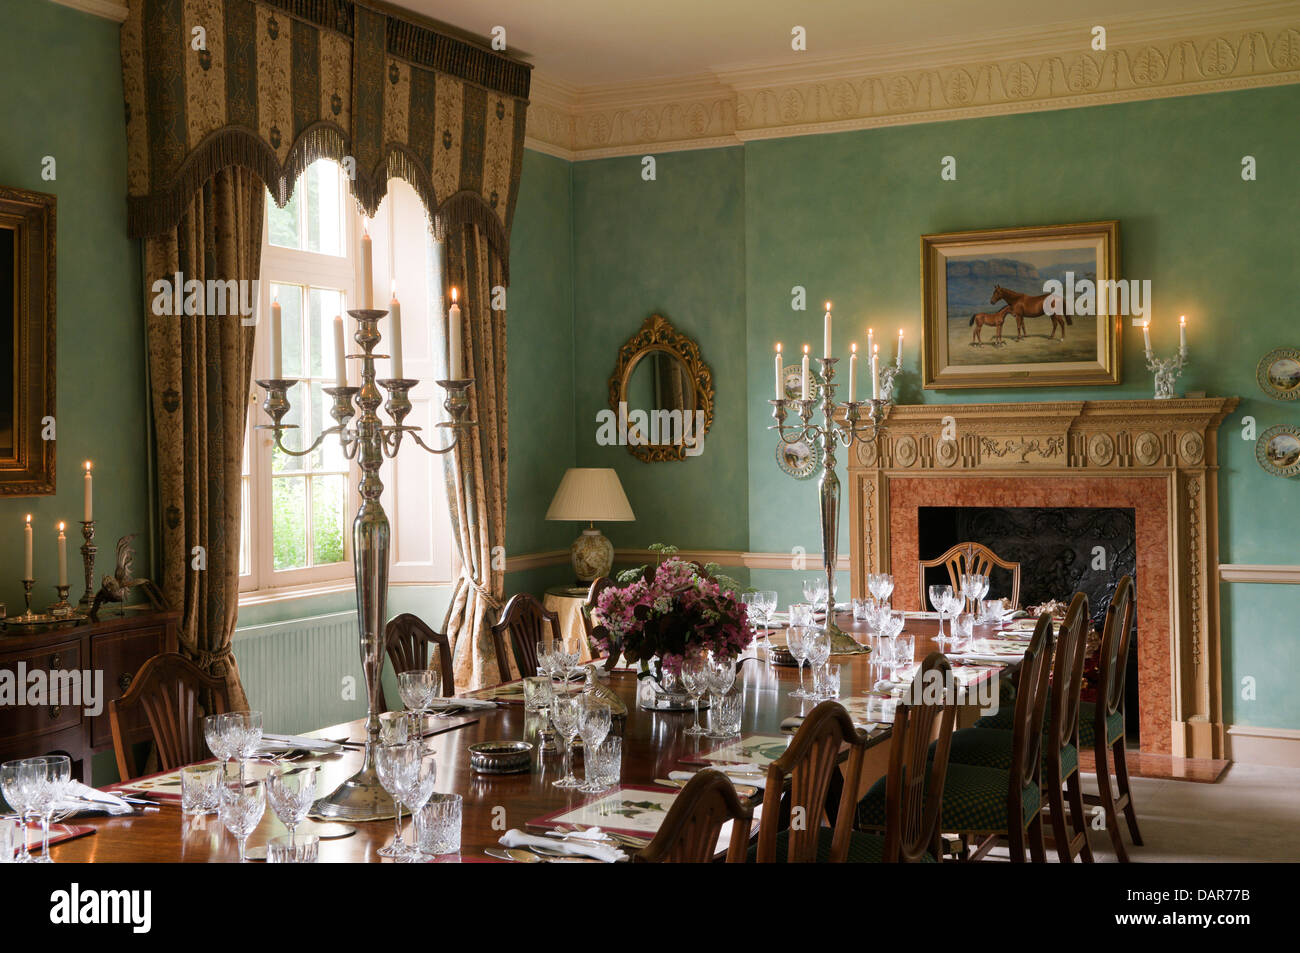 Sala Da Pranzo Traduzione Inglese Dining Table Lit Candles In Immagini And Dining Table Lit